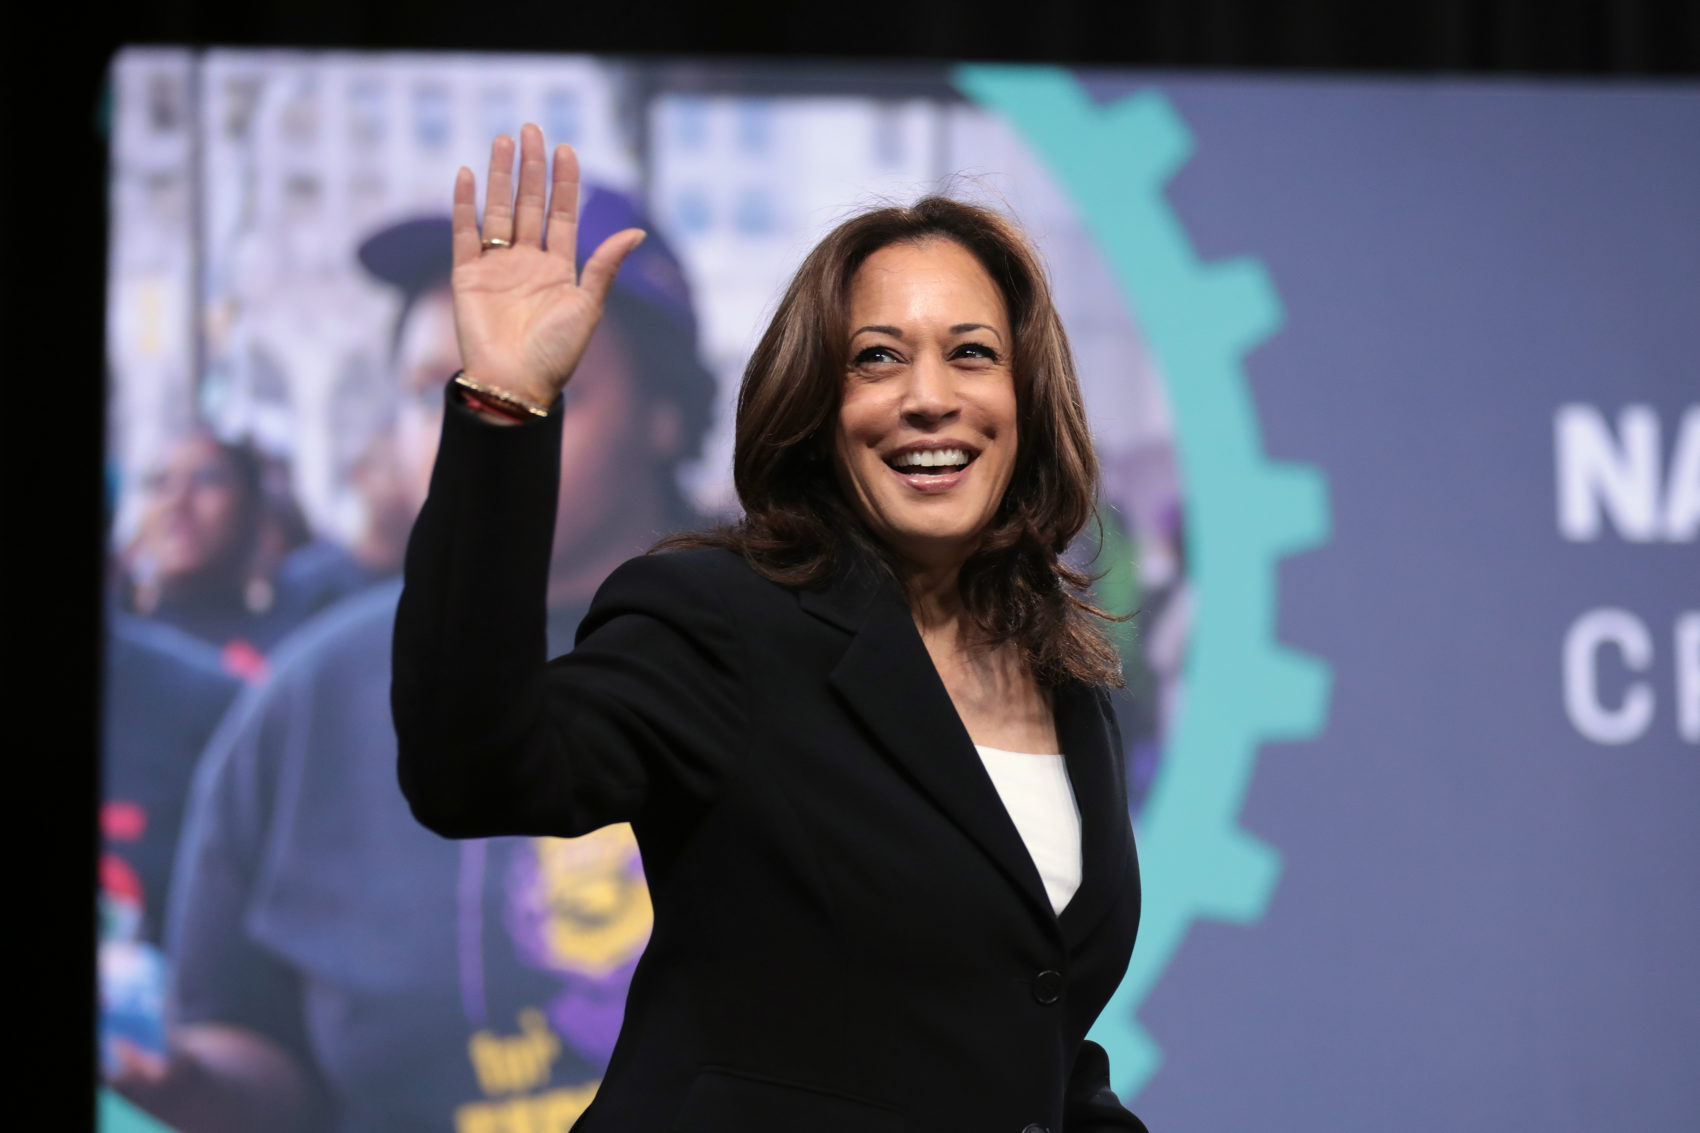 Wallace of Fox News: Kamala Harris Is Not 'Far Left' Despite What GOP Will 'Try to Say'